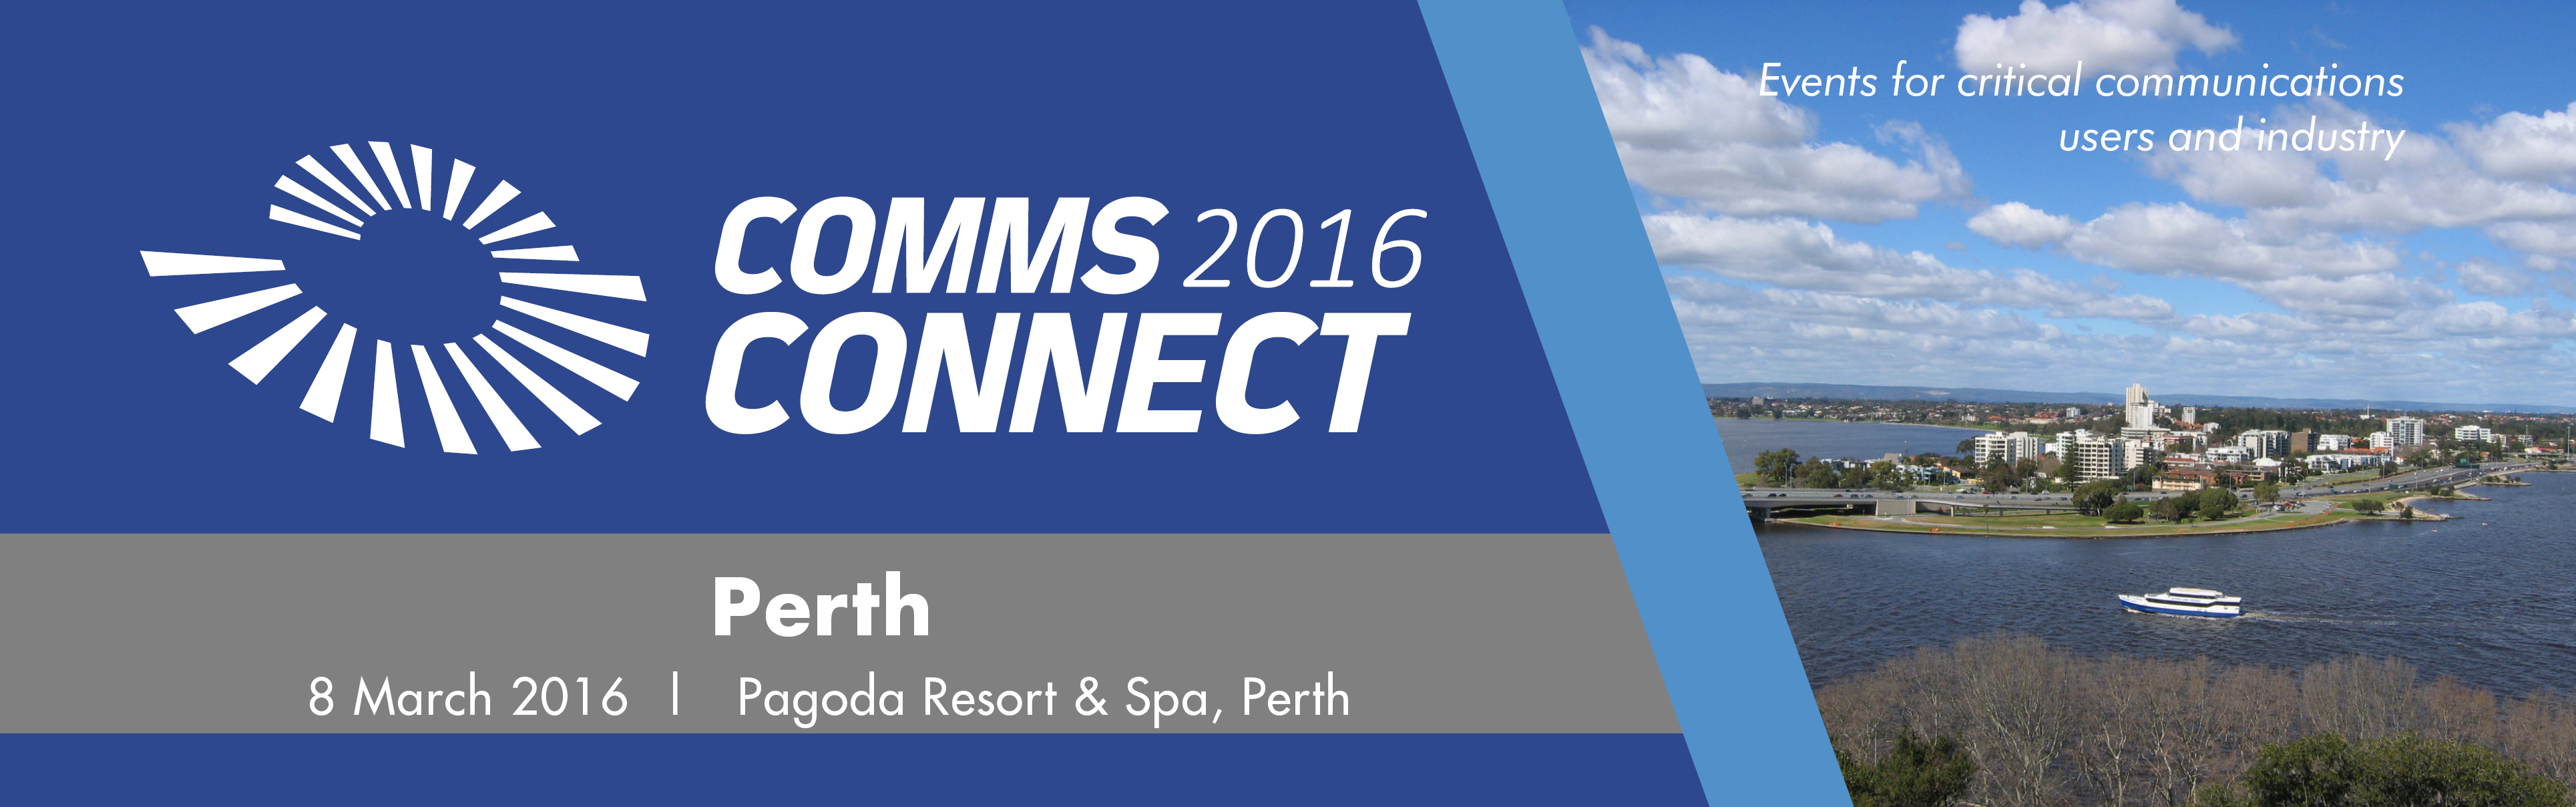 Comms Connect Perth 2016